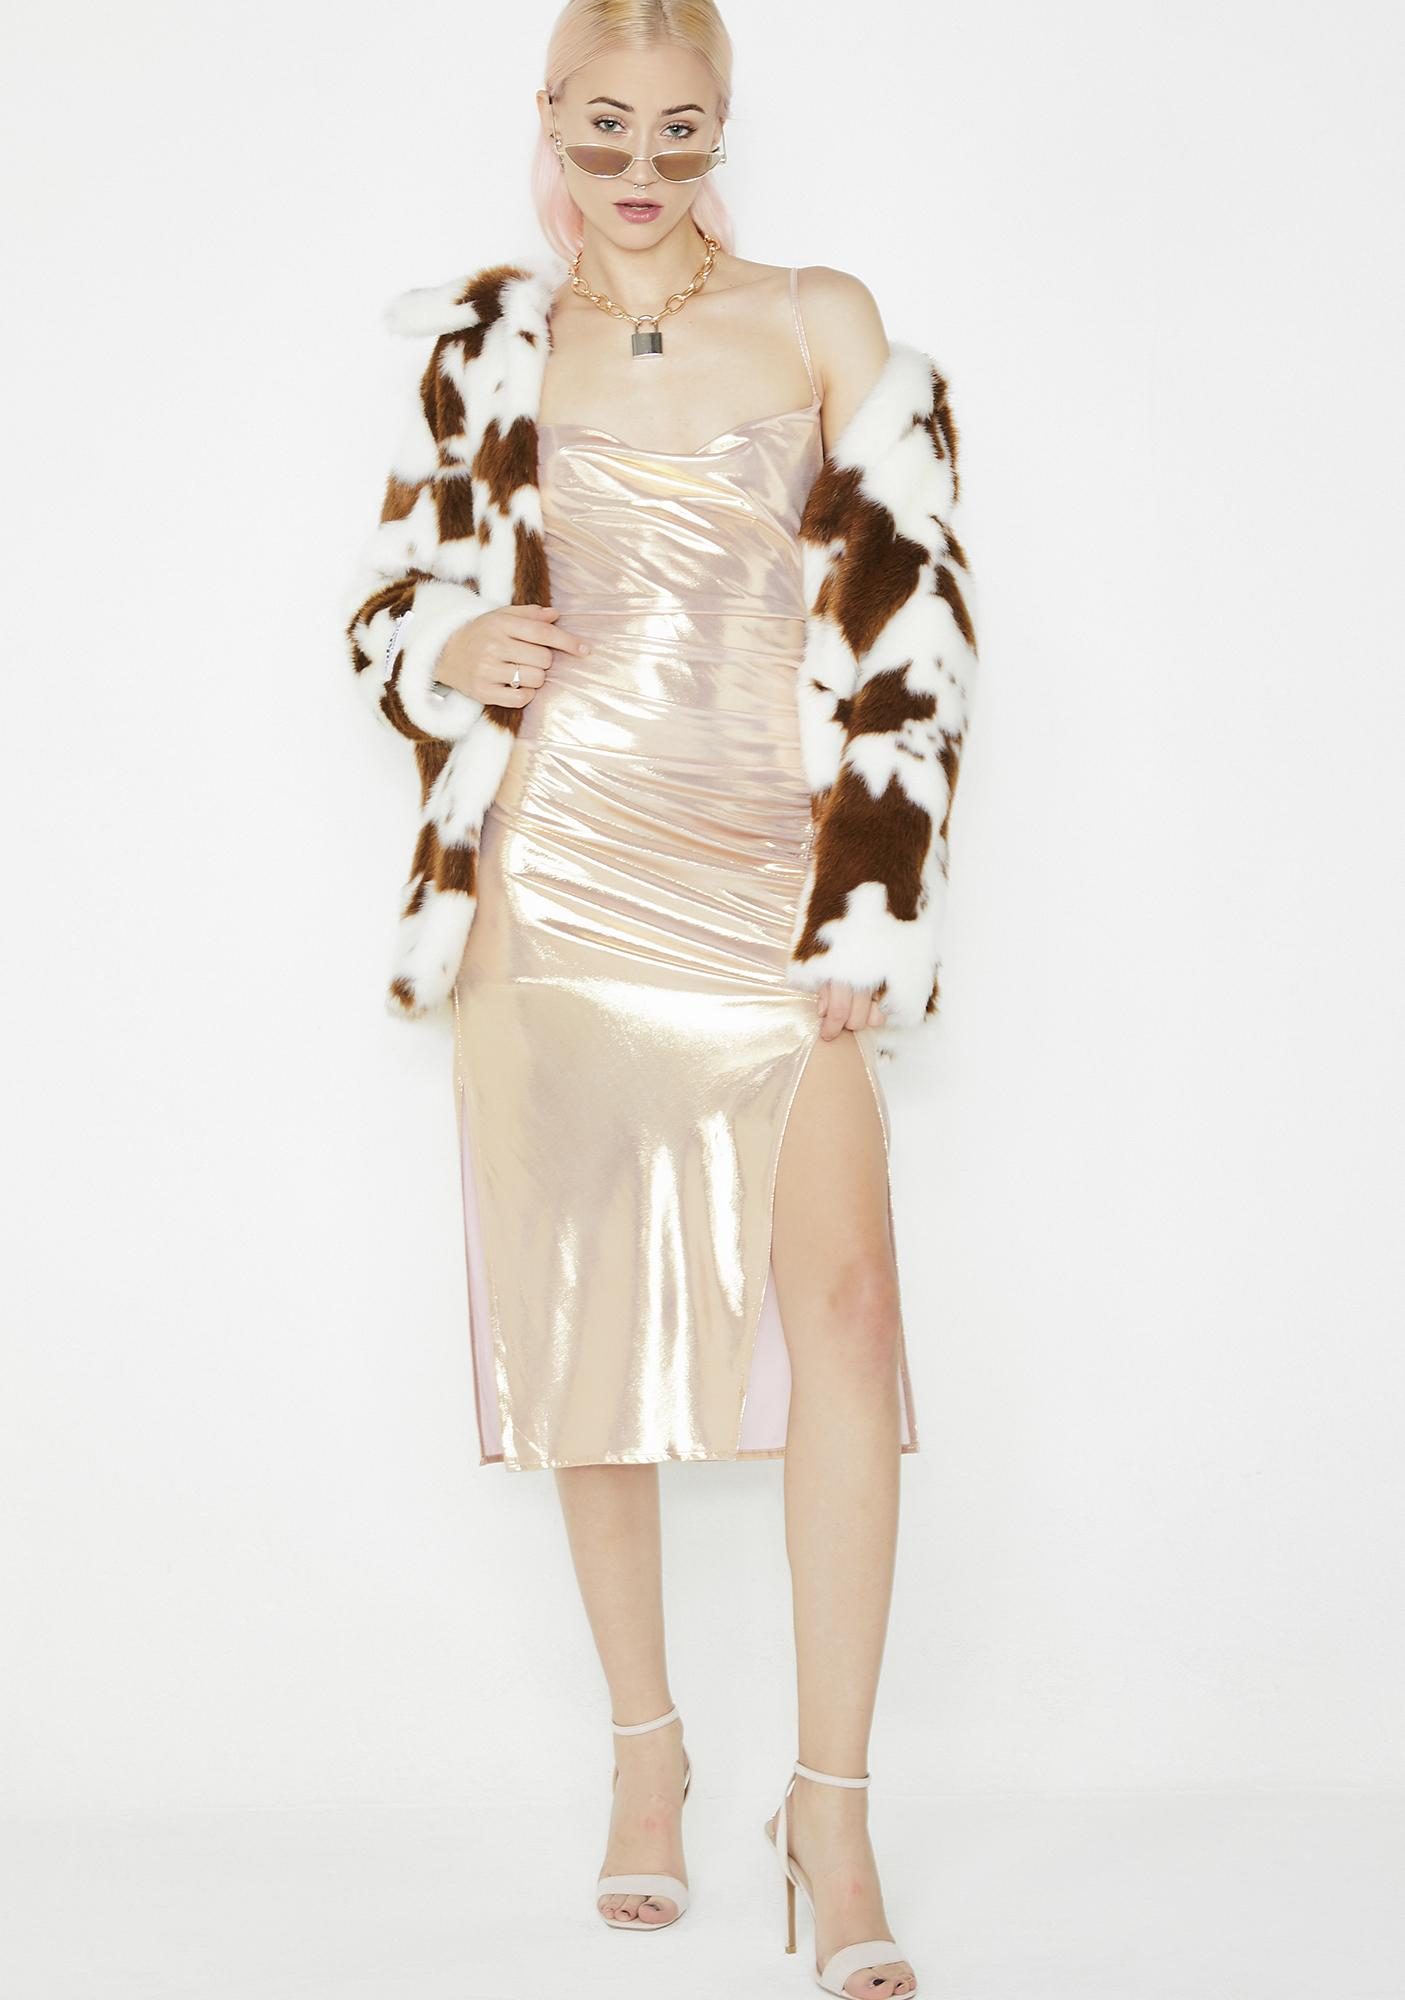 Champagne Wishes Metallic Dress